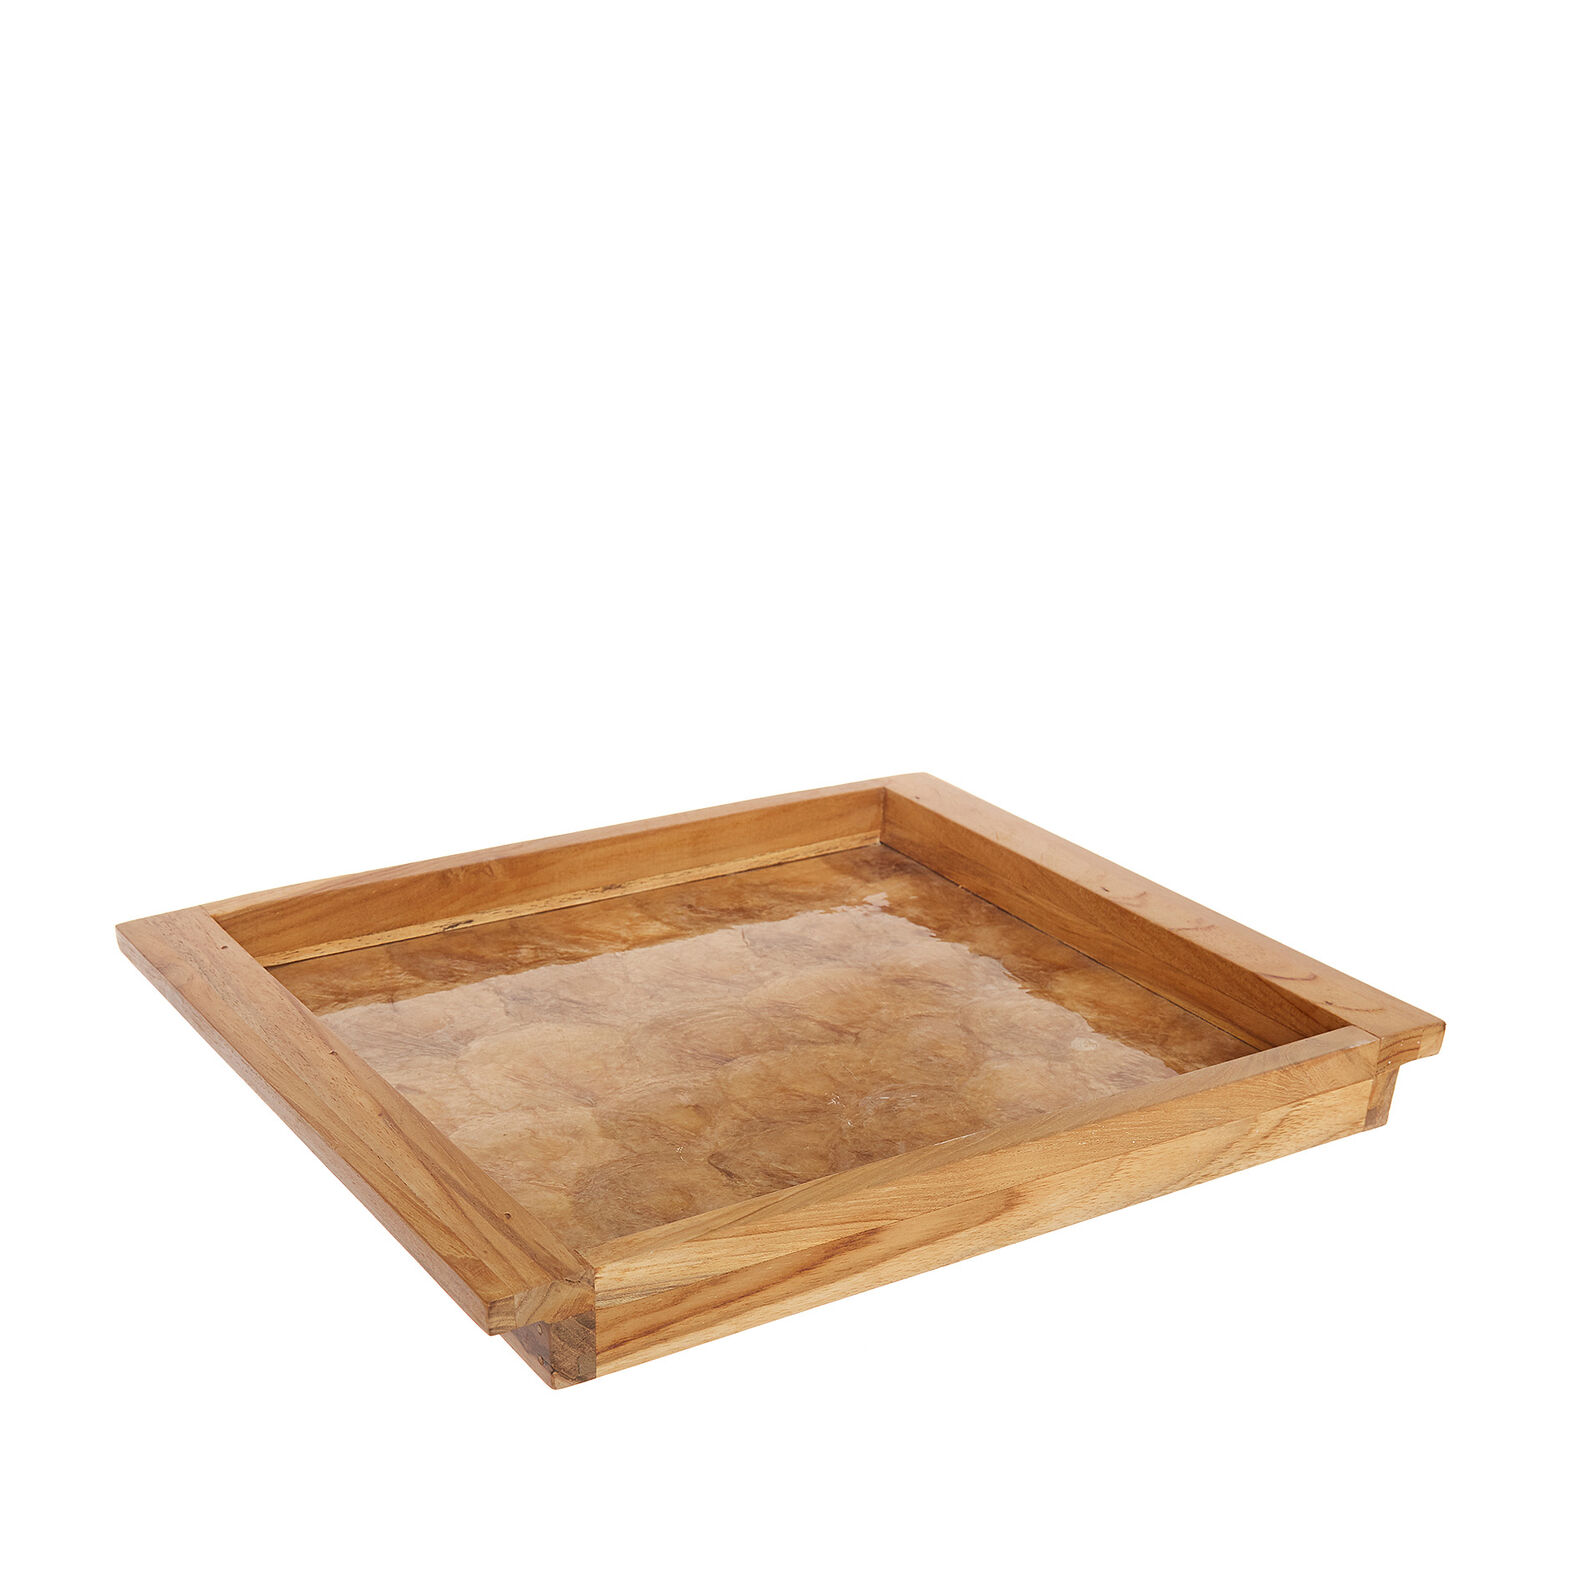 Handmade decorative wood and capiz tray